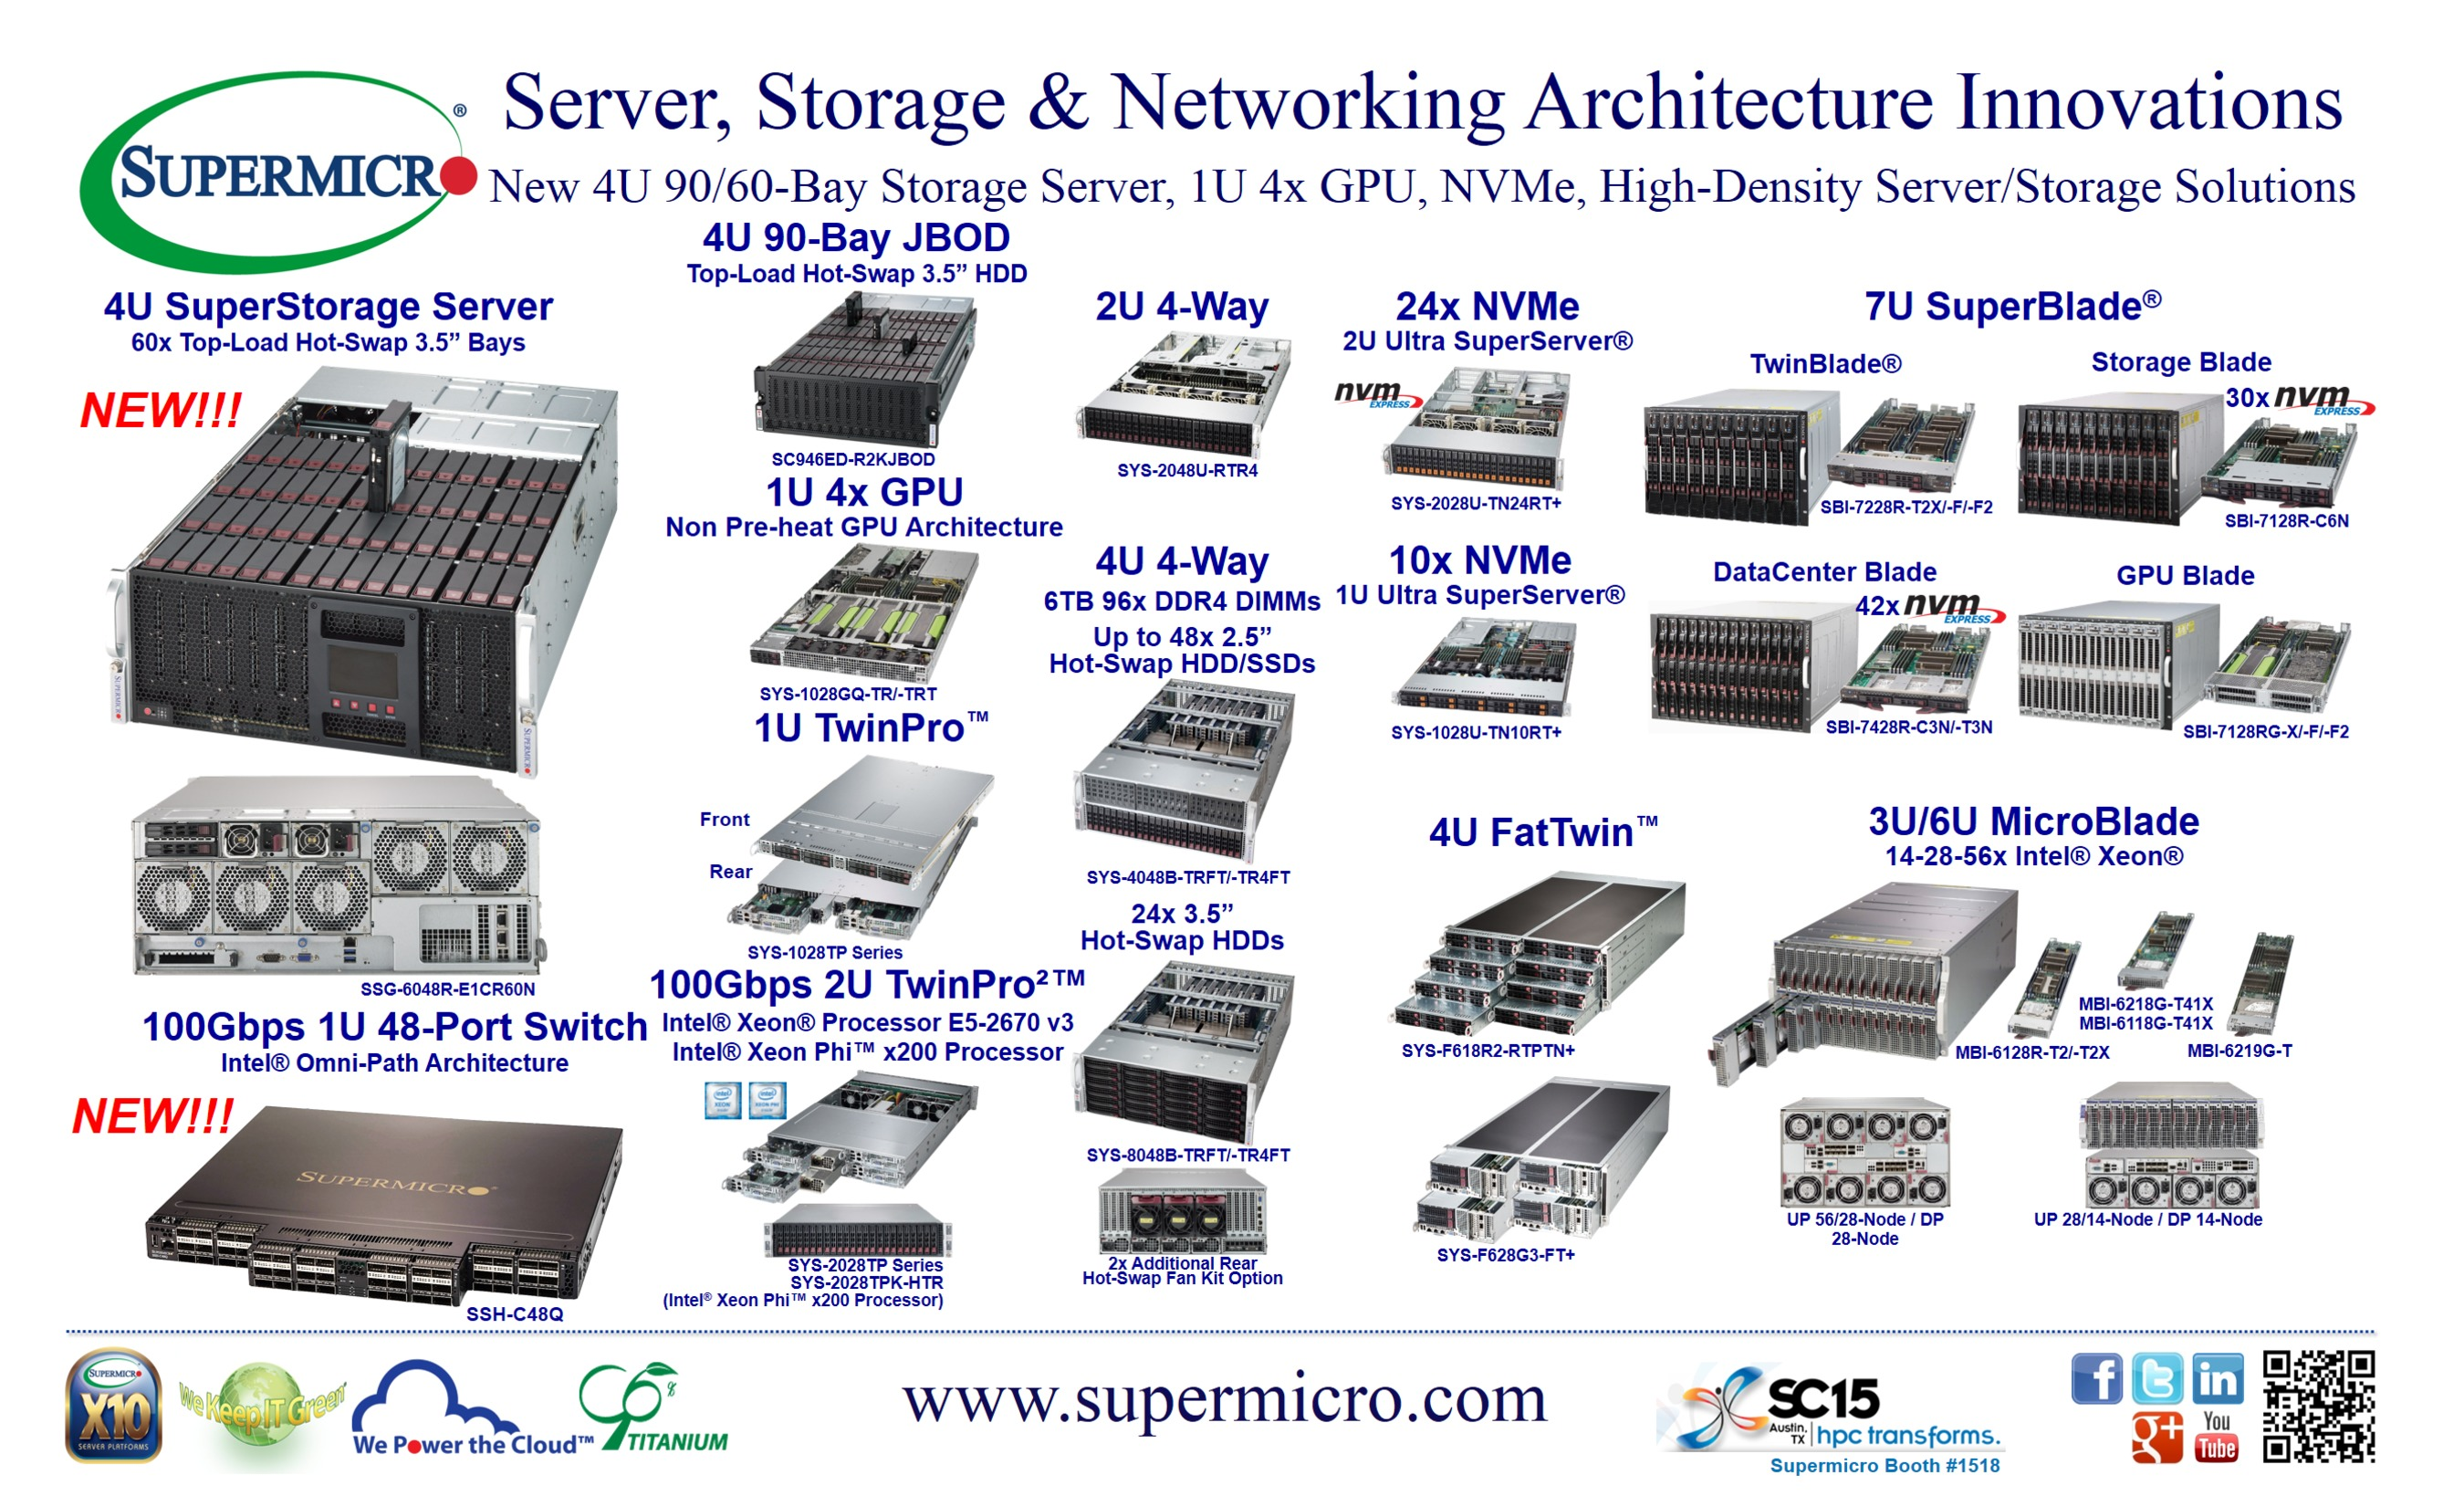 Supermicro' Debuts New 4U 90/60-Bay Storage Server alongside 1U 4x GPU, NVMe, High-Density Server and Storage Solutions at SC15